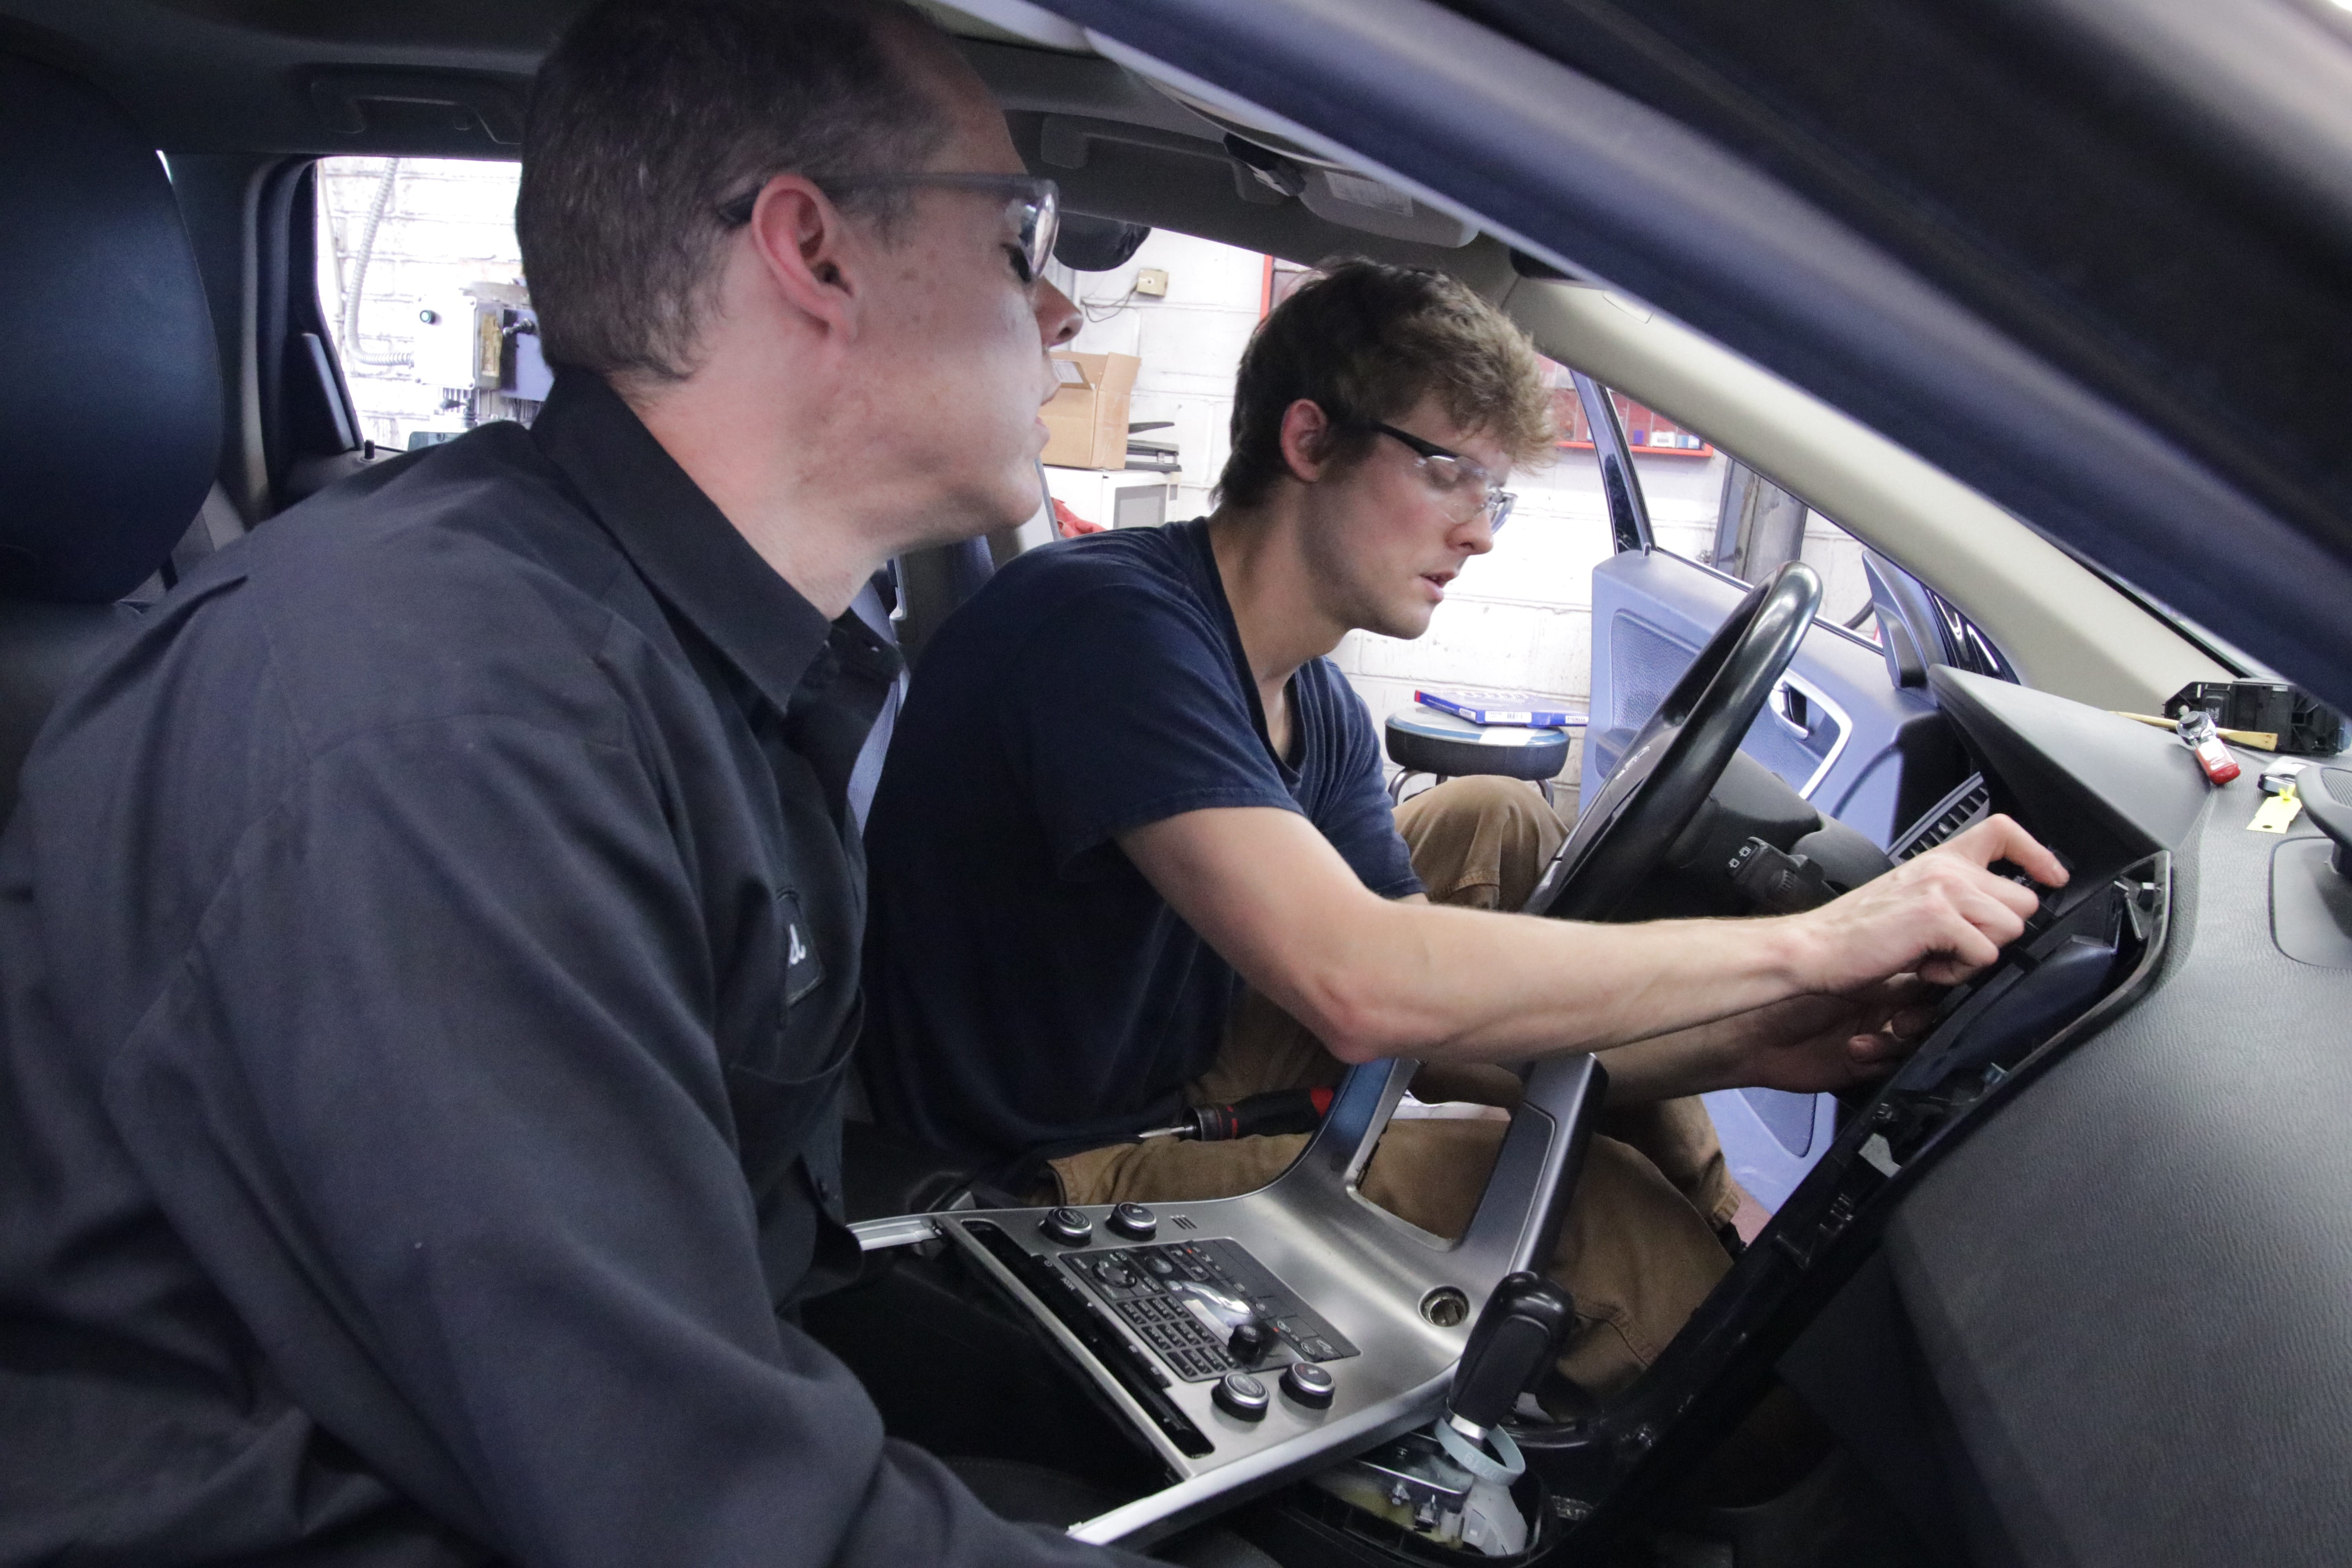 Mike Glasgow Jr., the third generation to work at Glasgow Automotive, works with another mechanic to make repairs behind the dashboard.